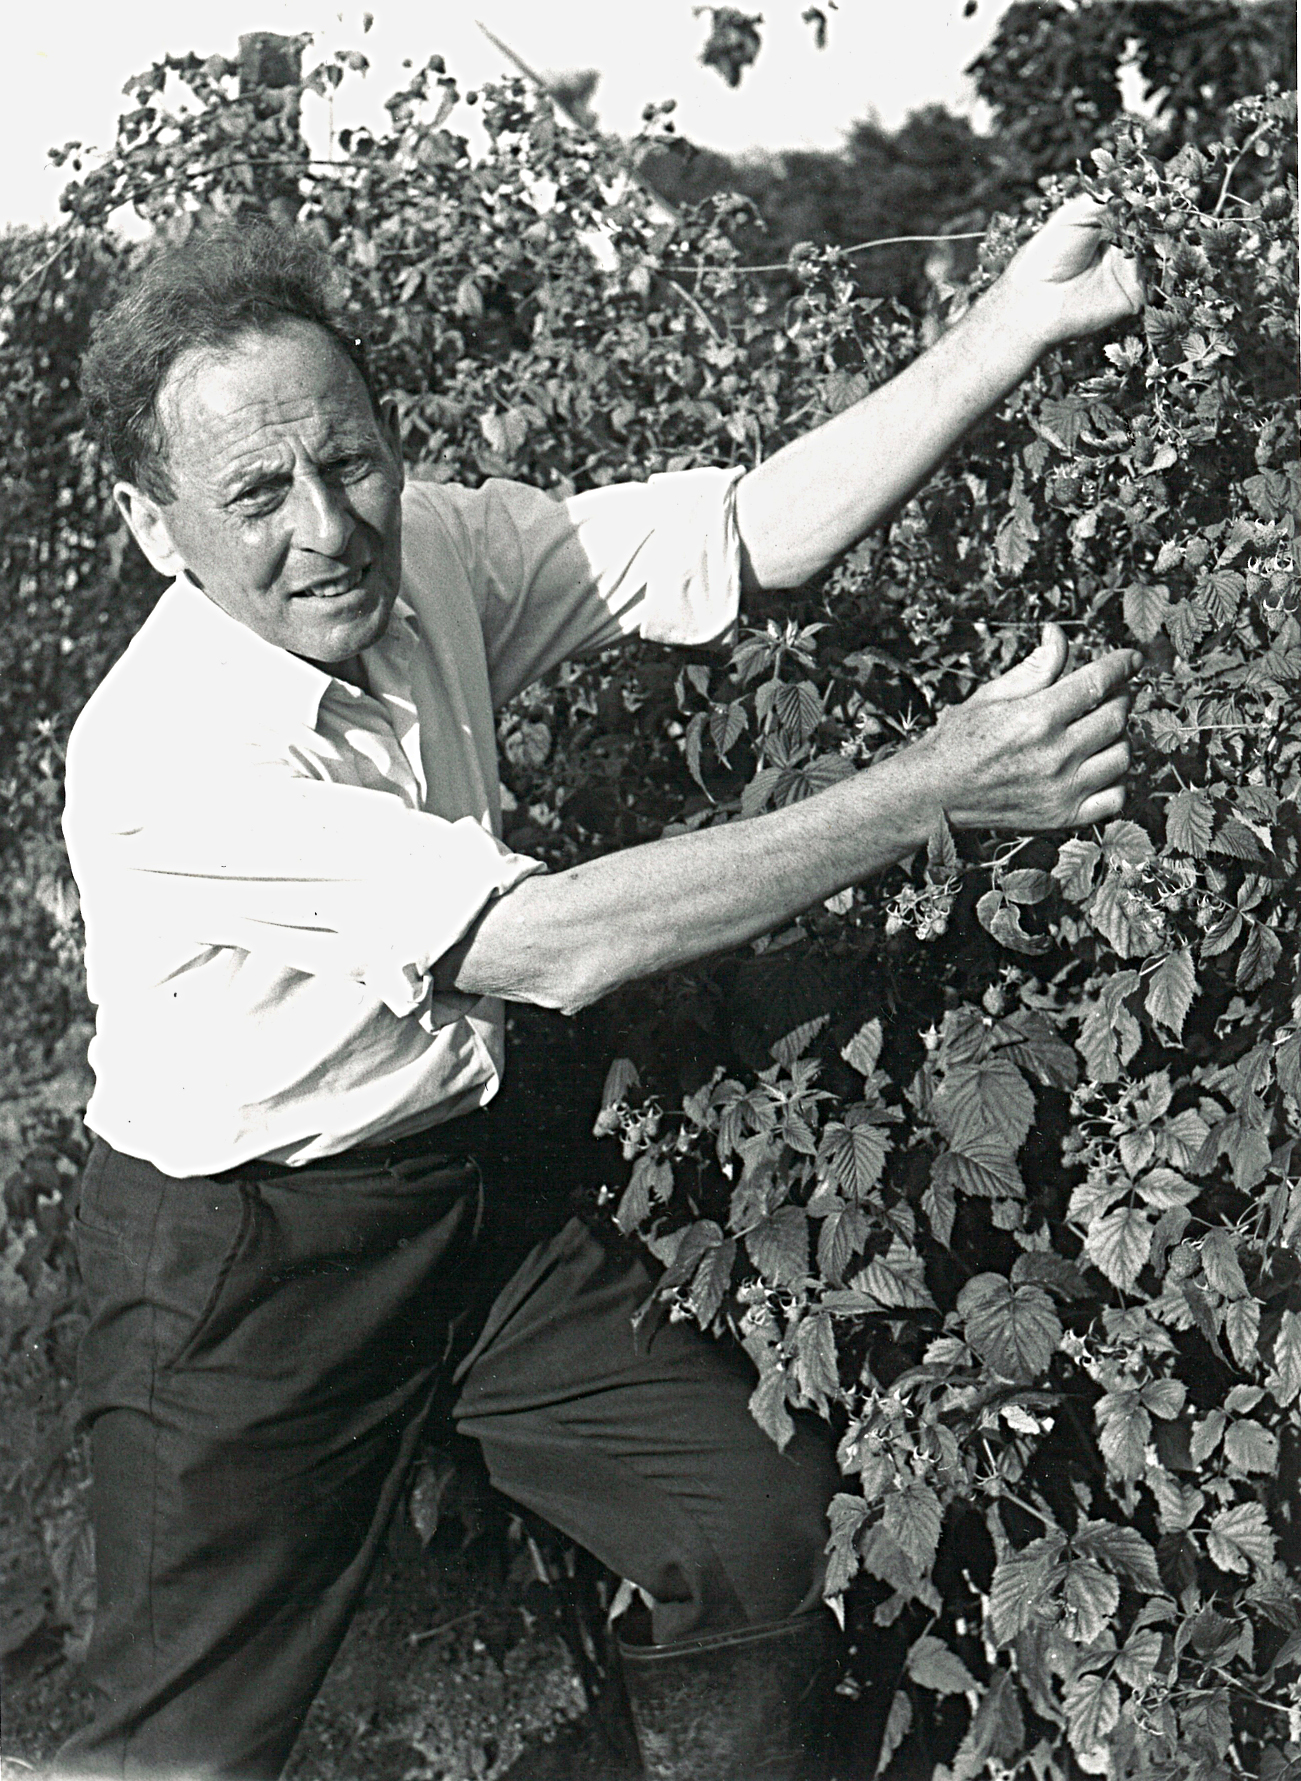 Man in rolled up shirts posing by hedge